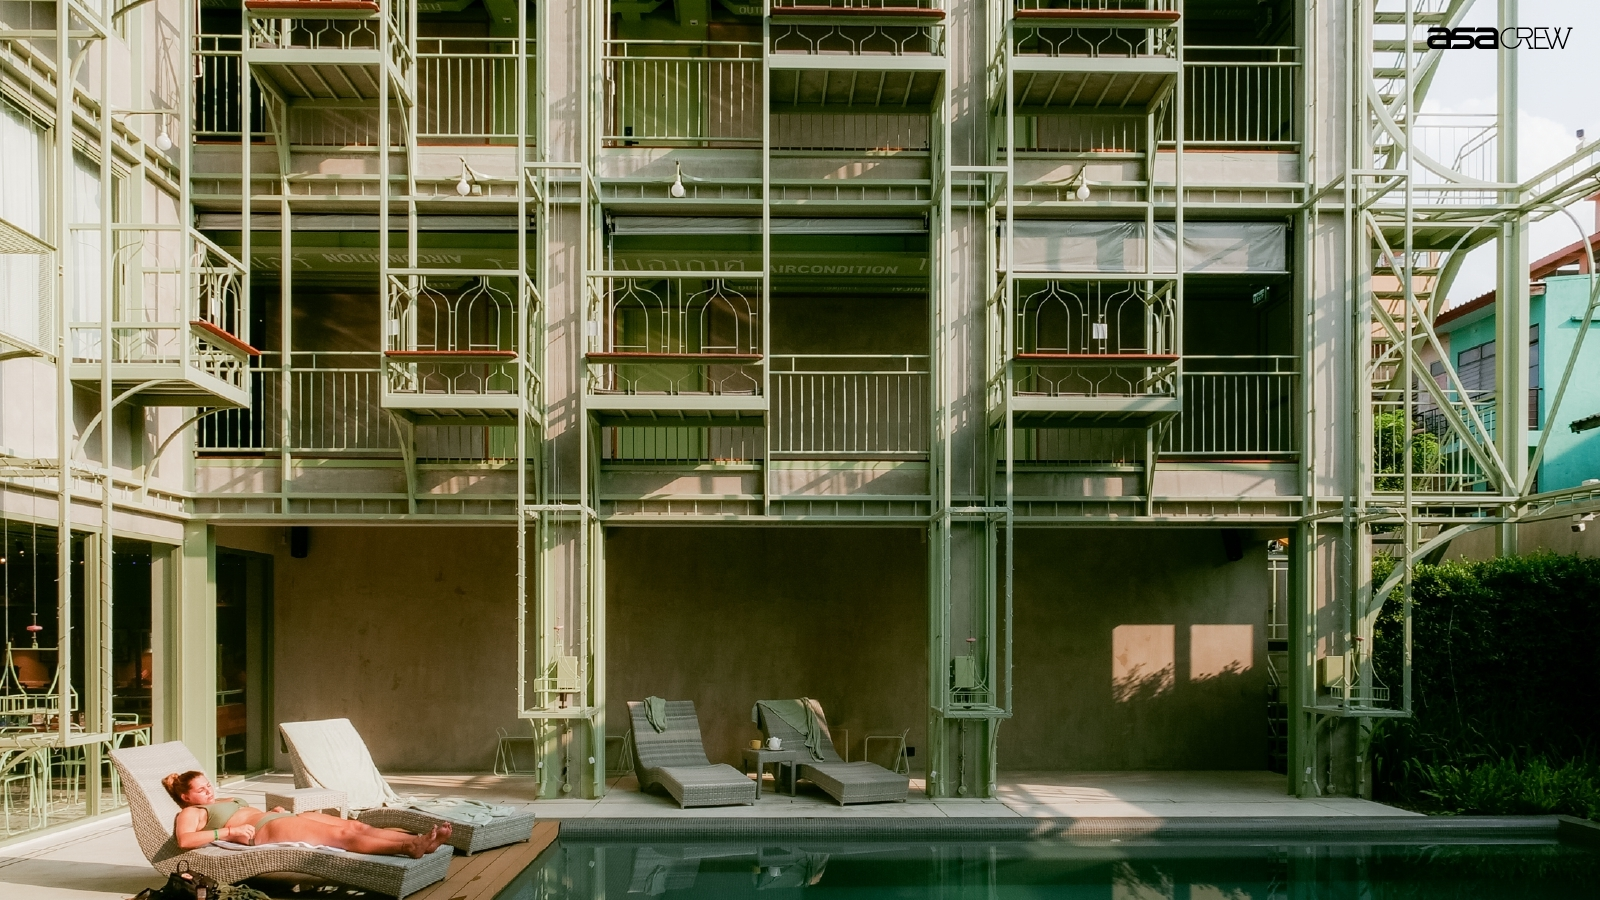 Walk & Talk with an Architect 3: Samsen Street Hotel by CHAT Architects